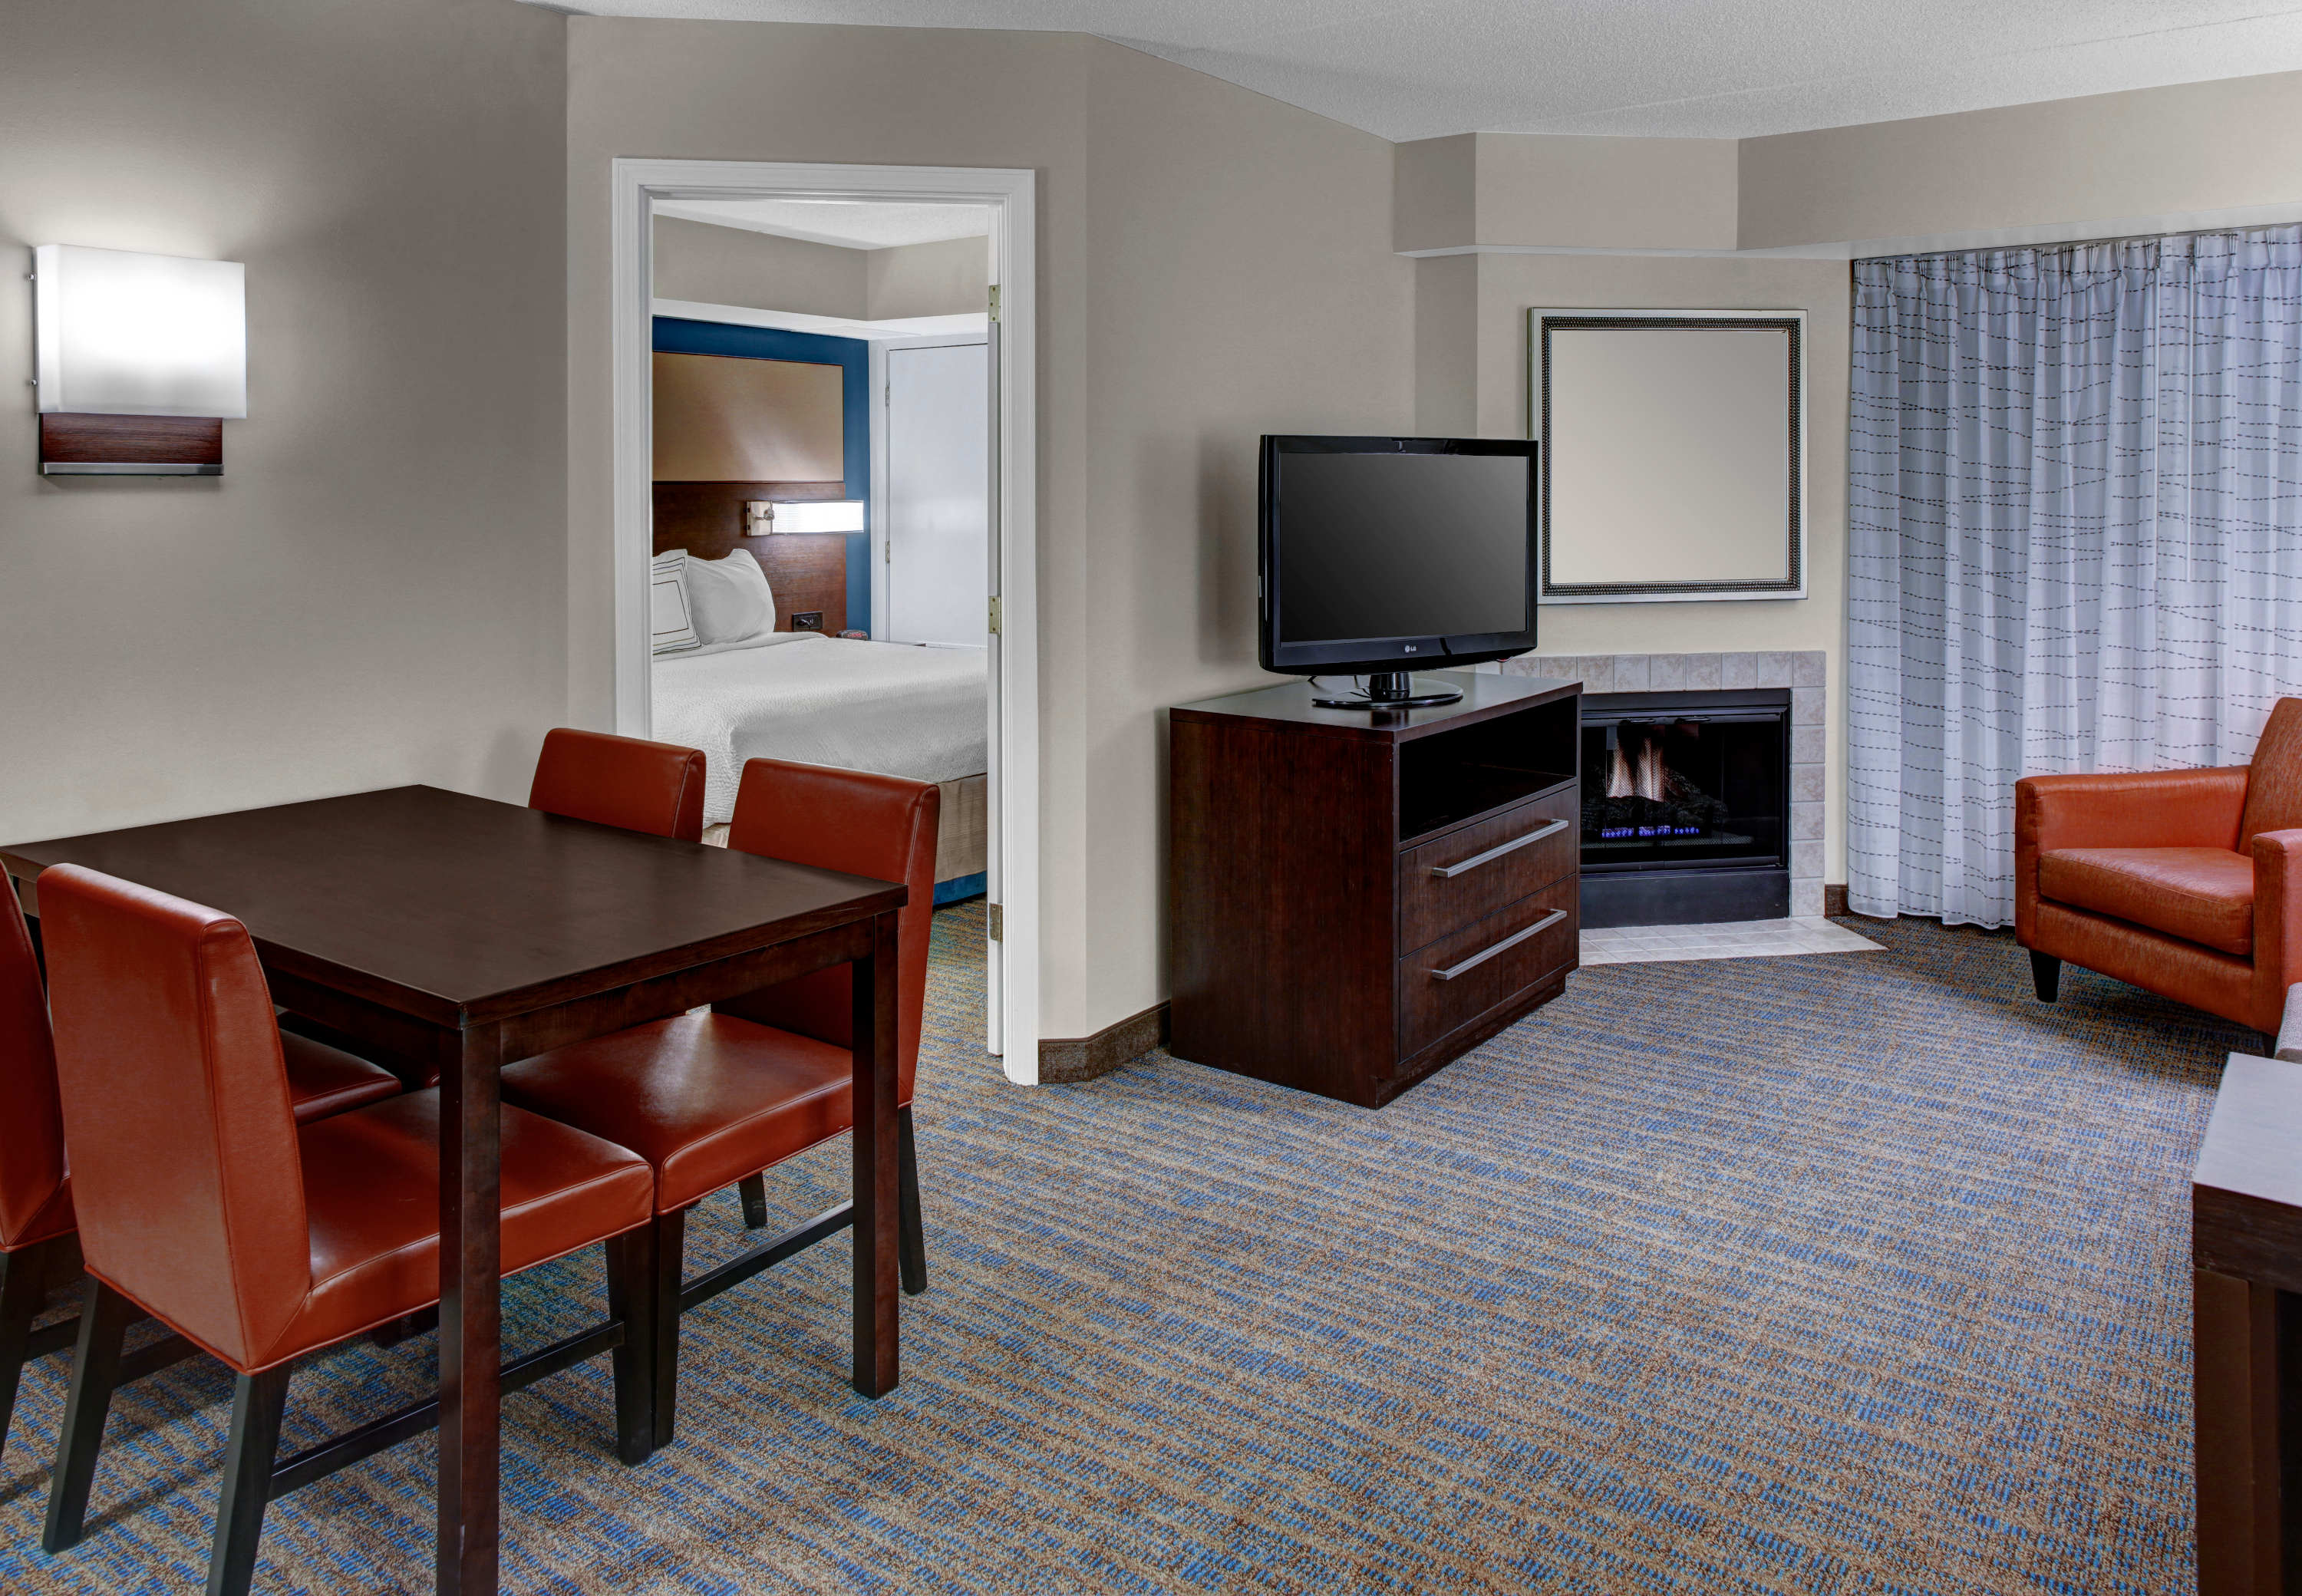 Residence Inn by Marriott Cleveland Mentor image 8